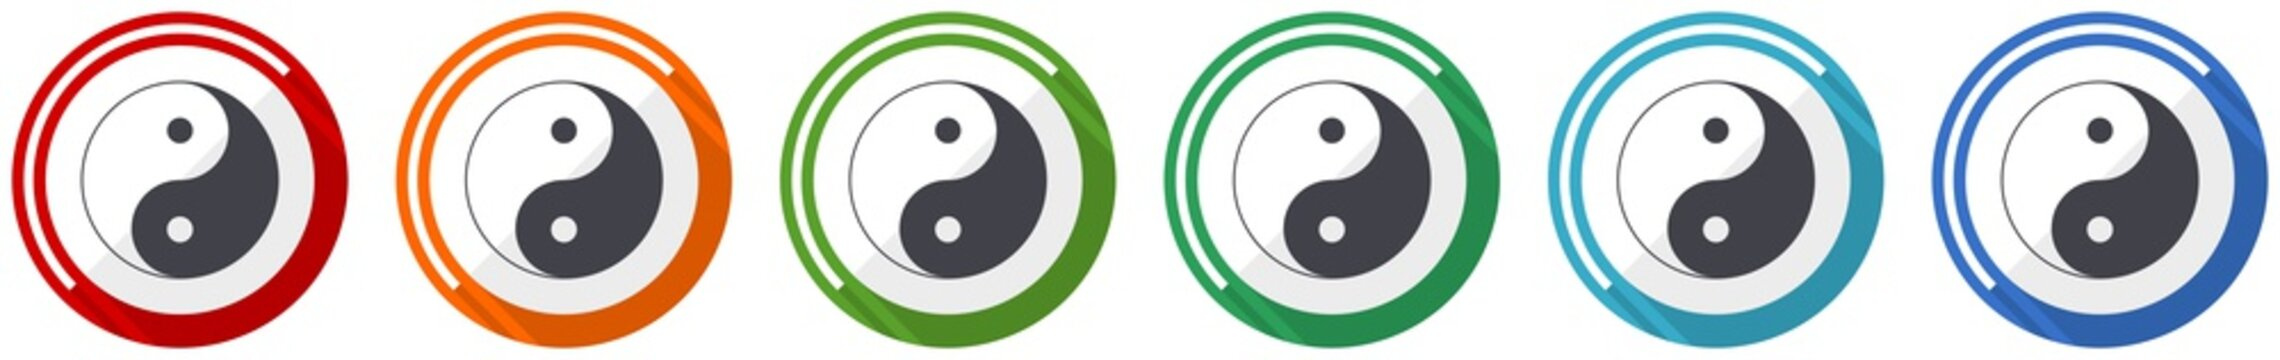 Ying yang icon set, flat design vector illustration in 6 colors options for webdesign and mobile applications